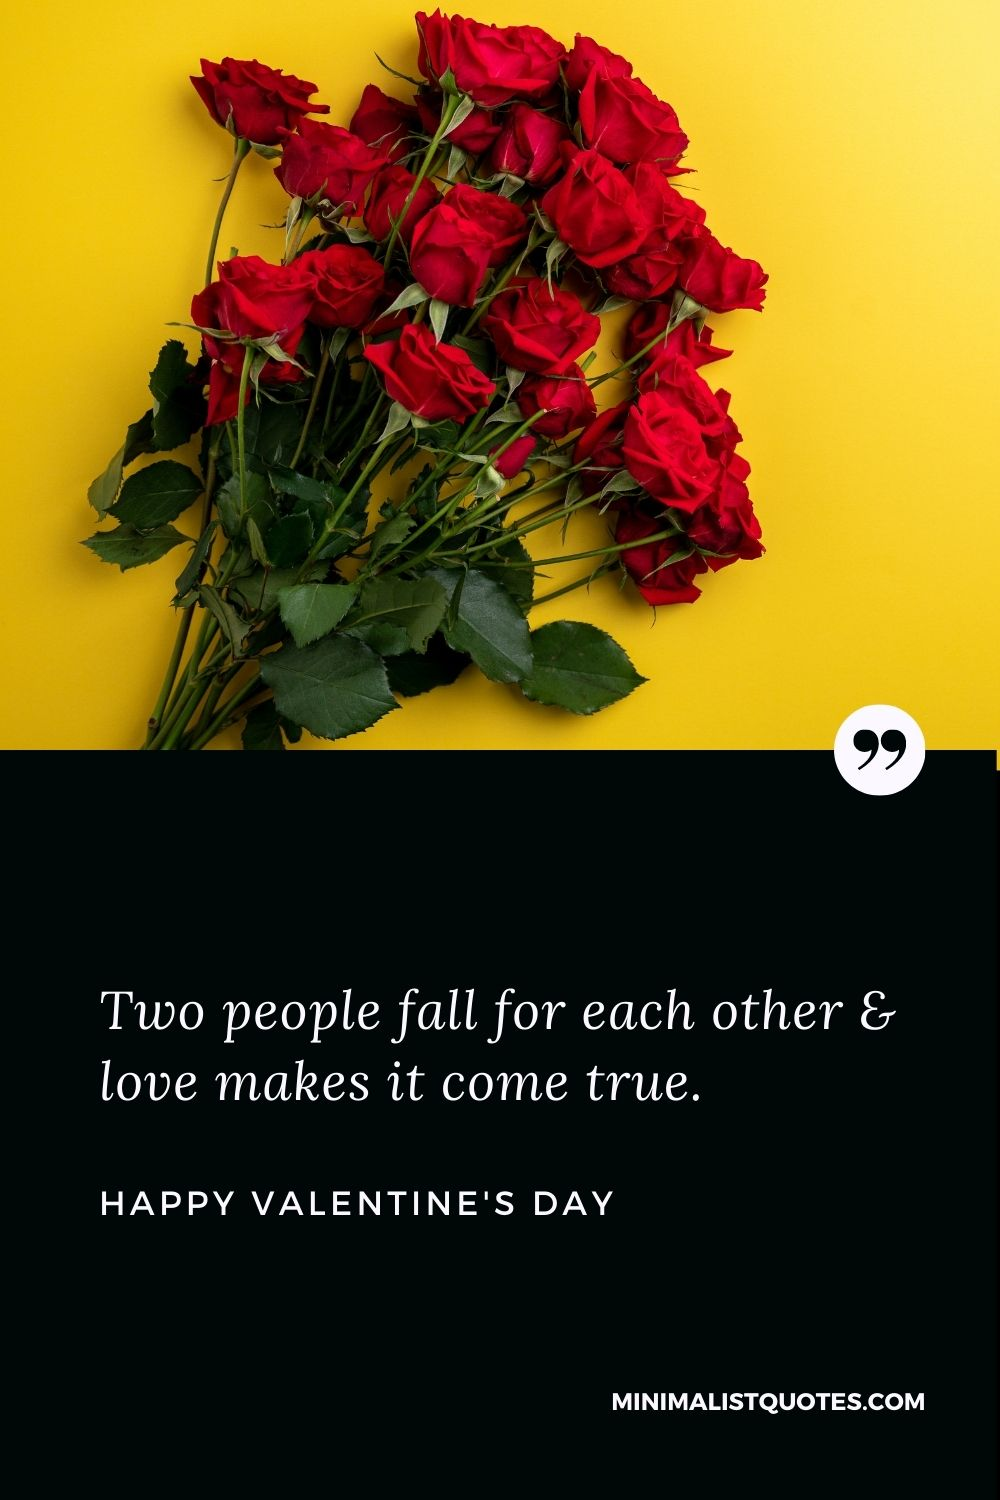 Happy Valentine's Day Wish - Two people fall for each other & love makes it come true.